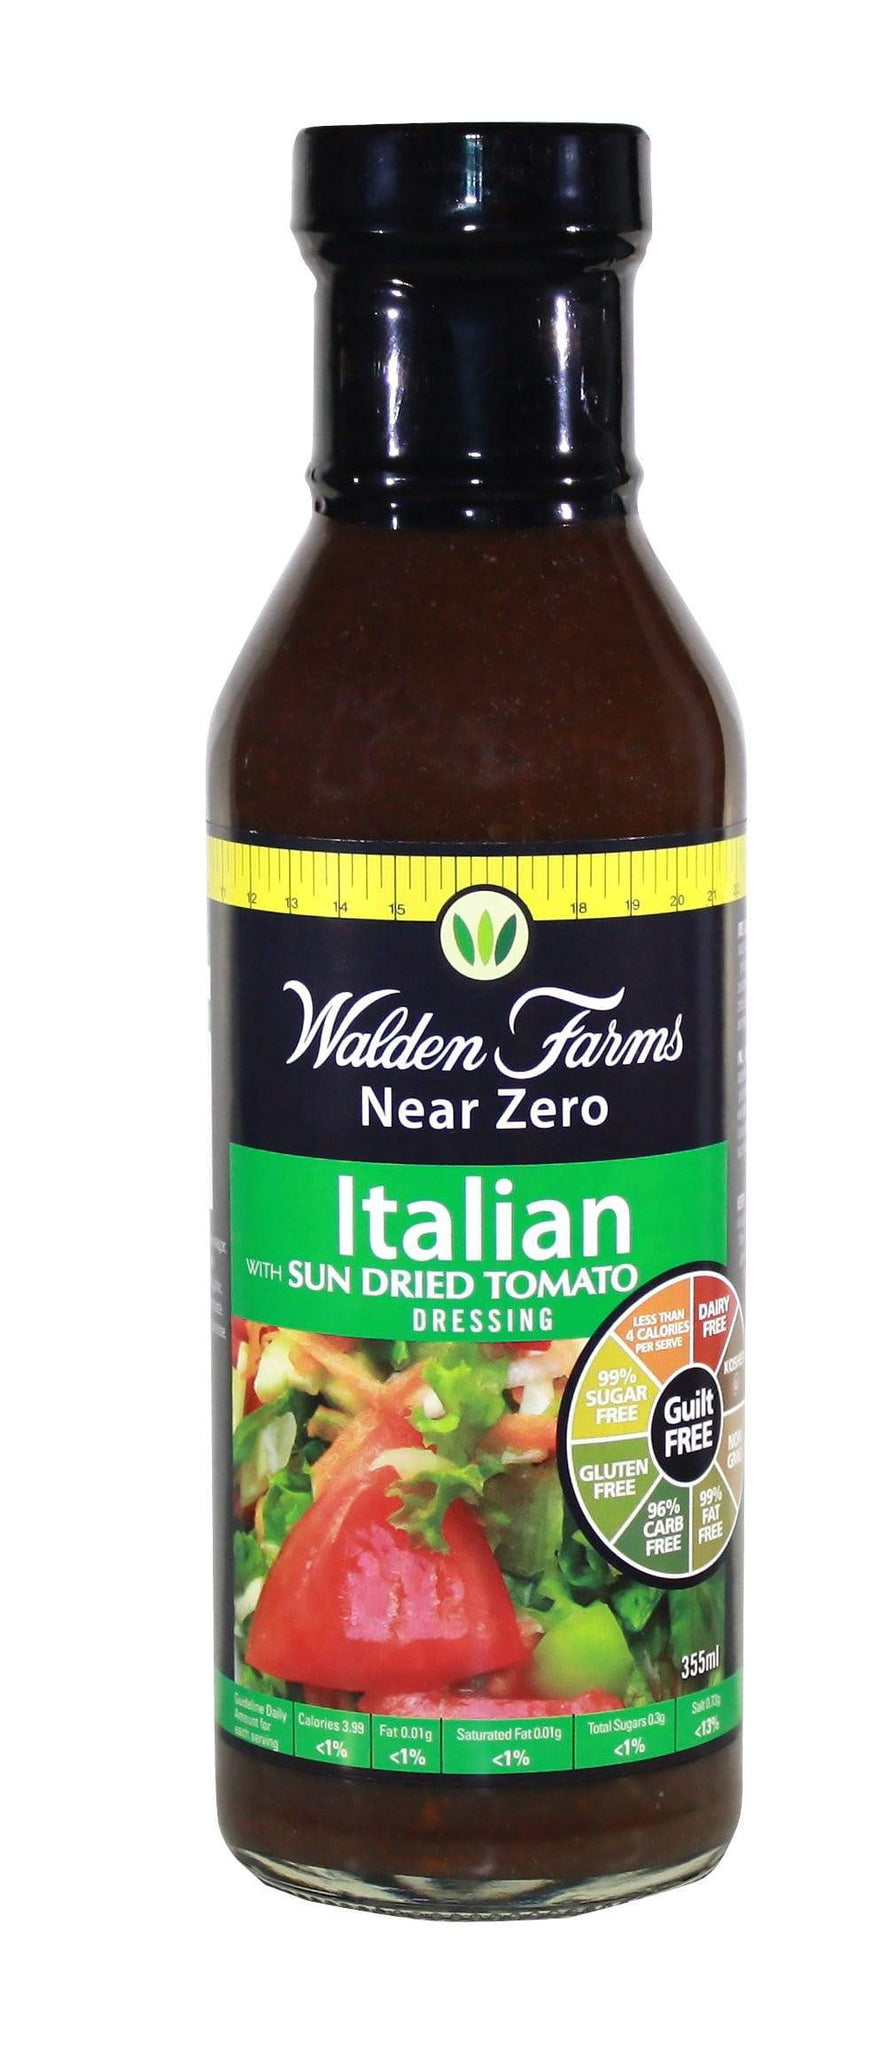 Walden Farms Italian with Sun Dried Tomato